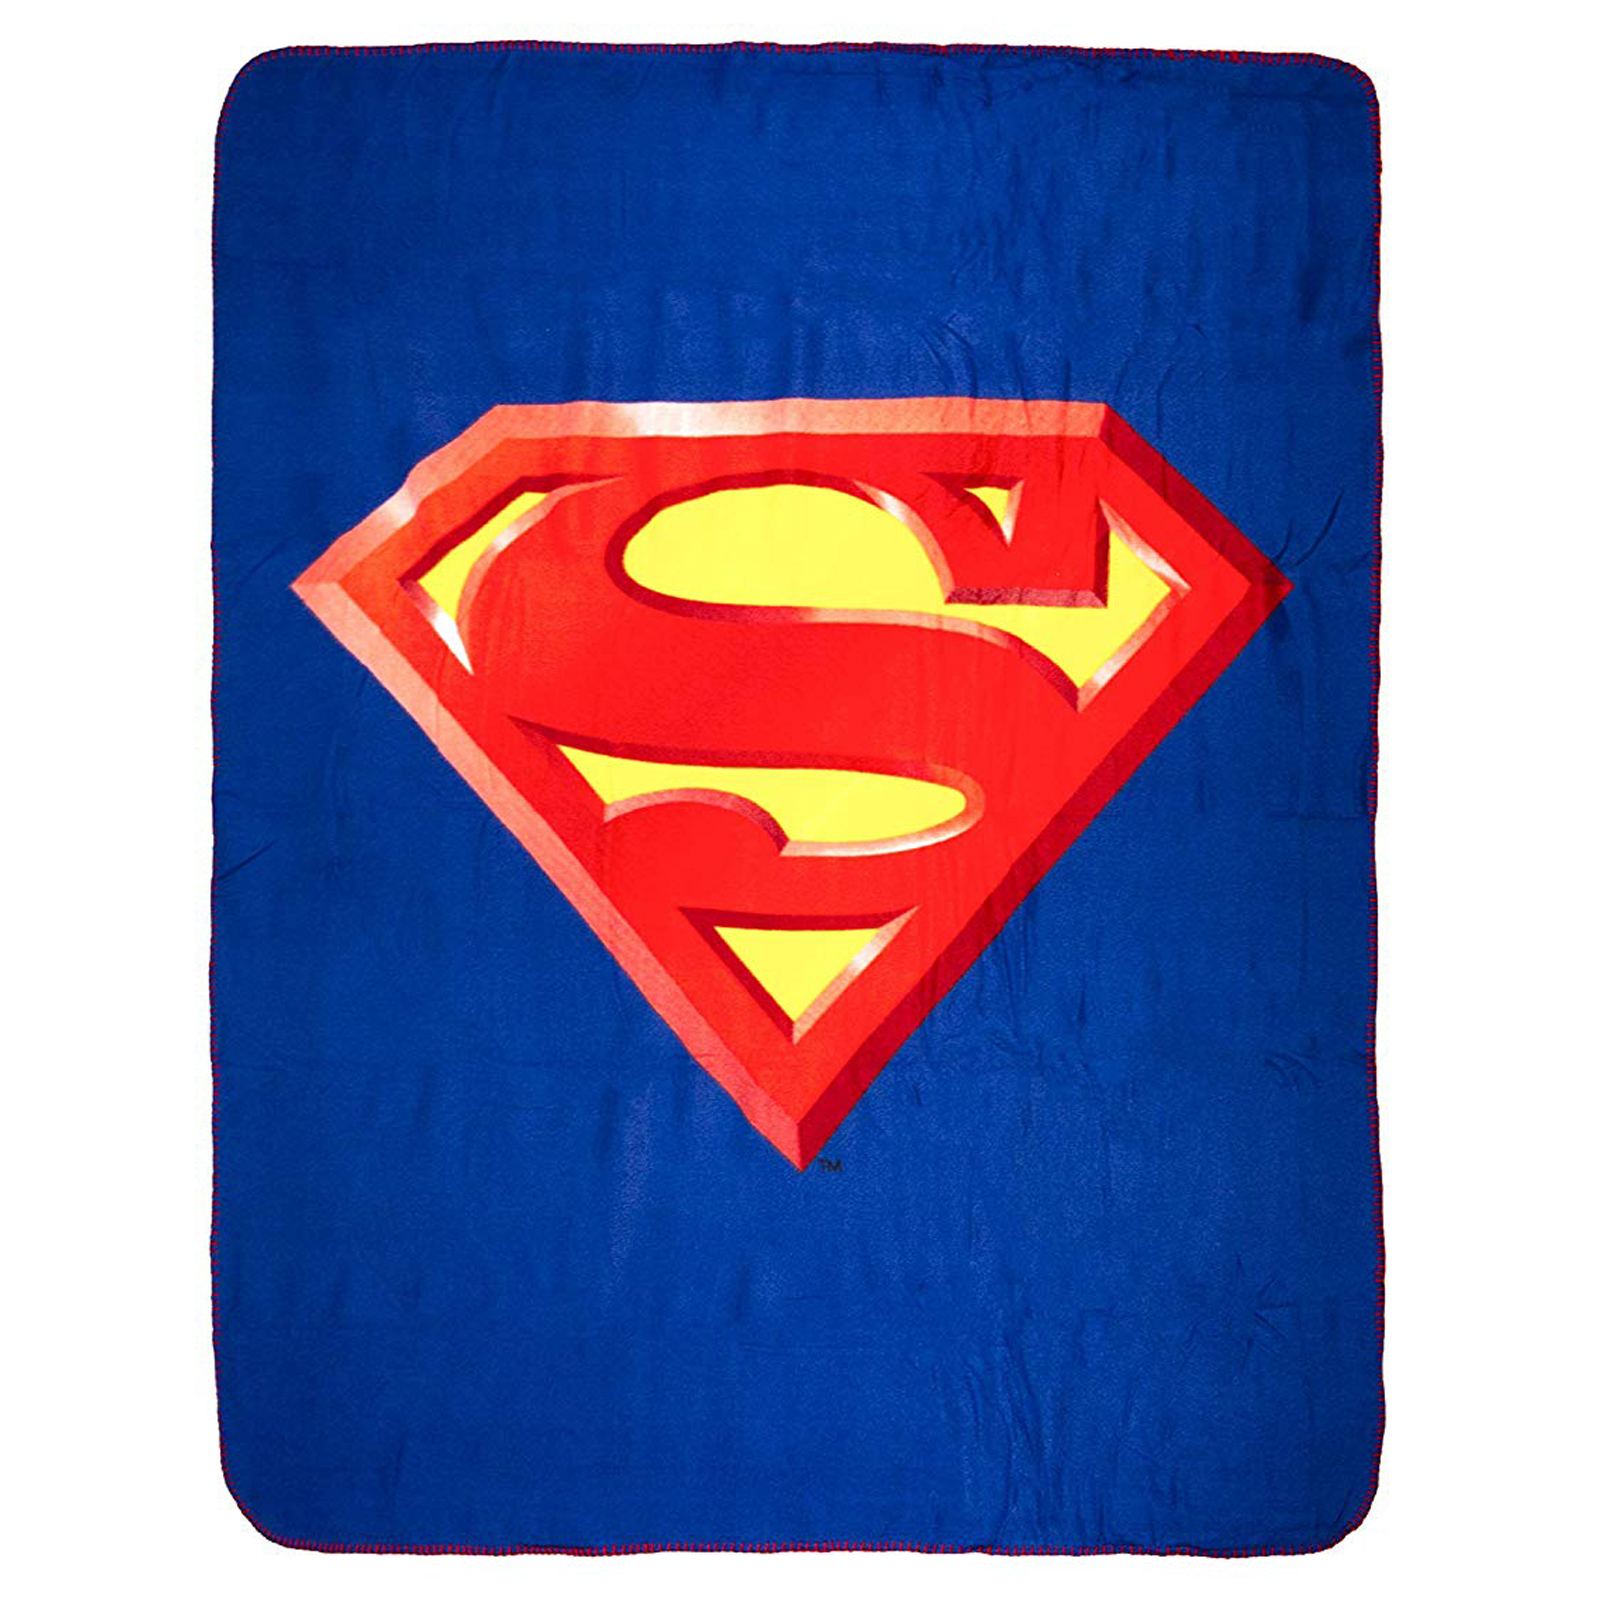 DC Comics Superman Logo Super Soft Fleece Throw Blanket